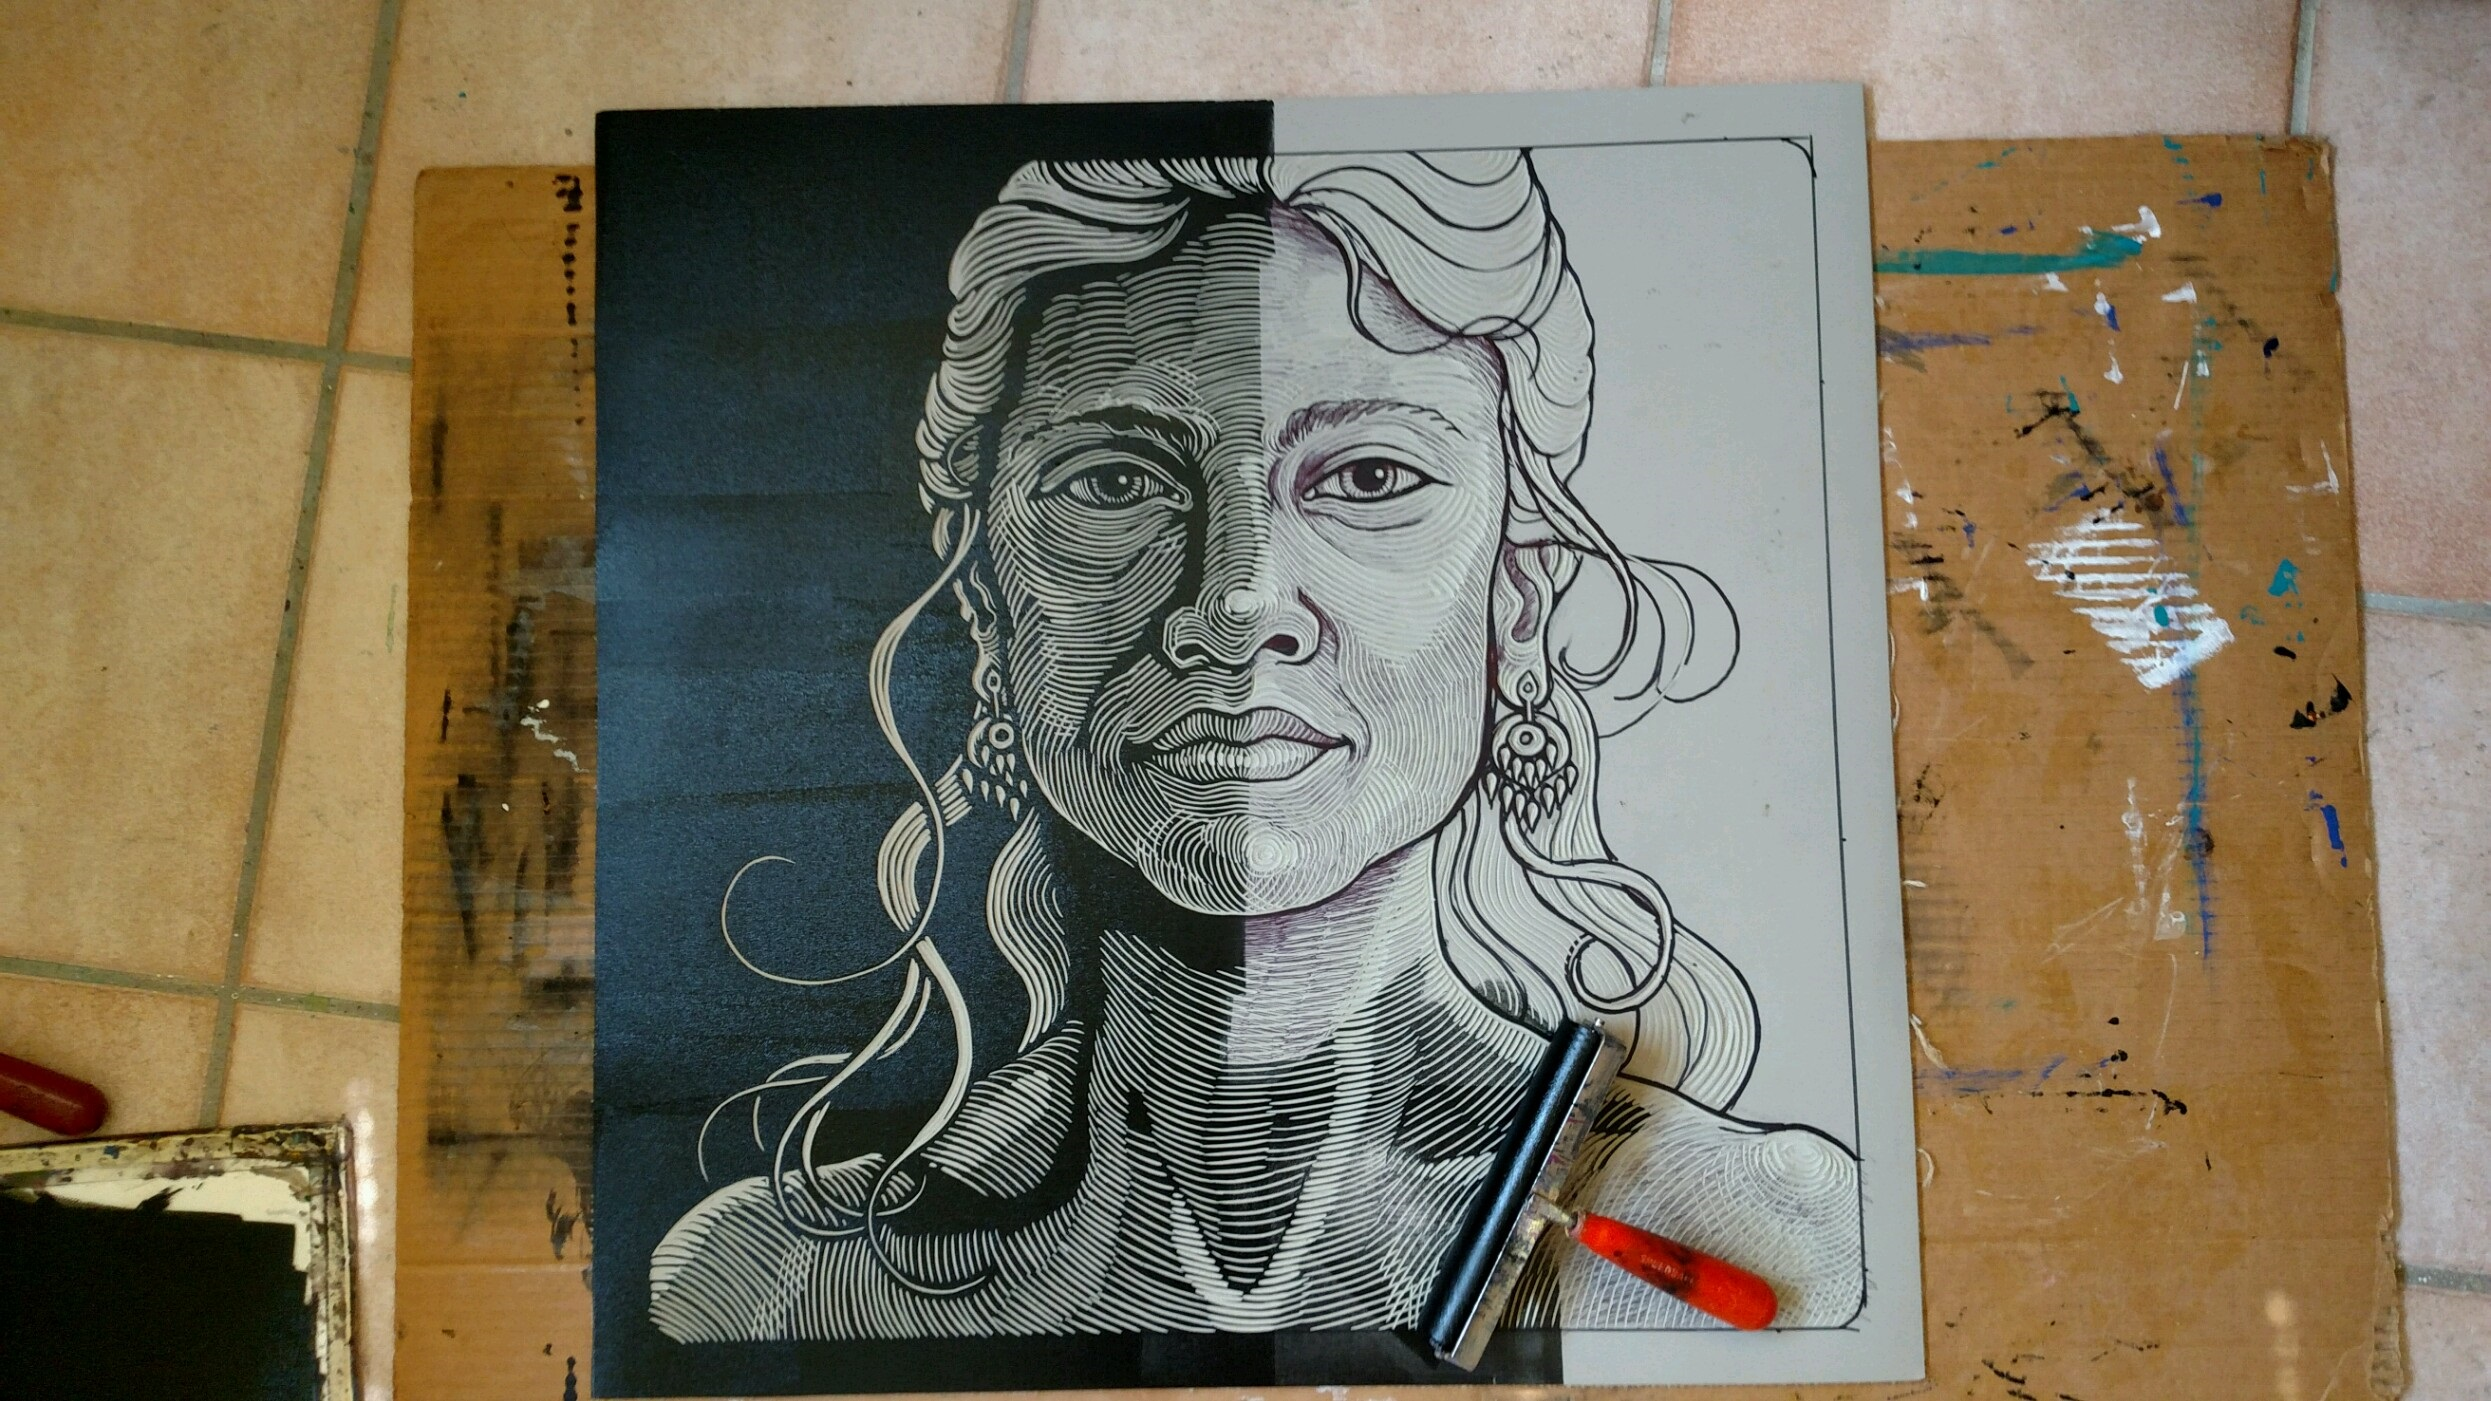 Step #3 - The block is inked